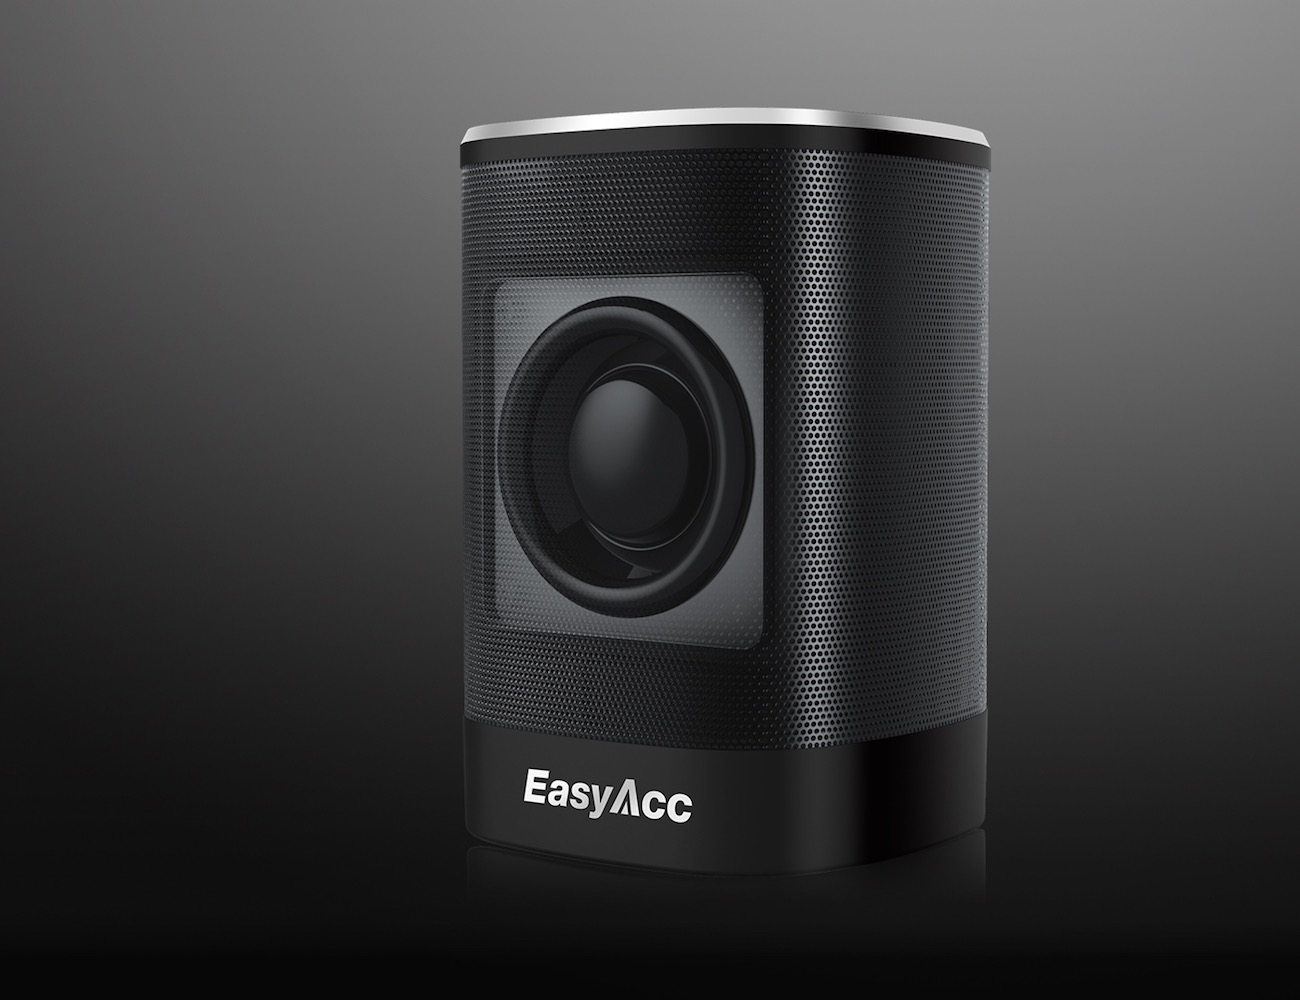 Amazing Portable Bluetooth Speaker From EasyAcc